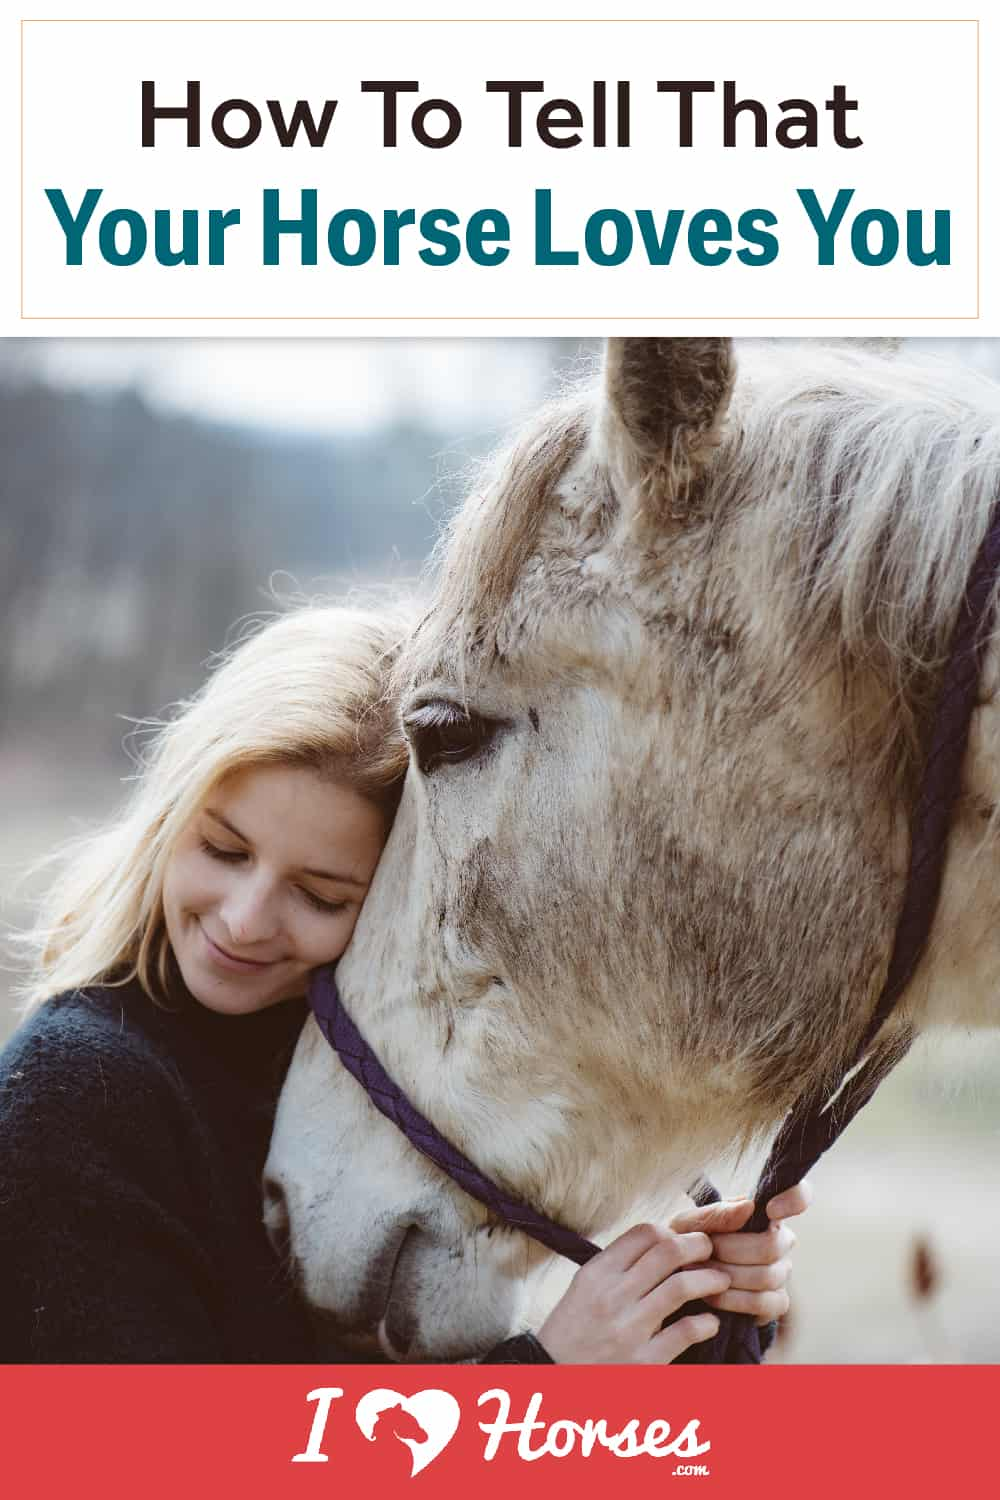 How To Tell That Your Horse Loves You